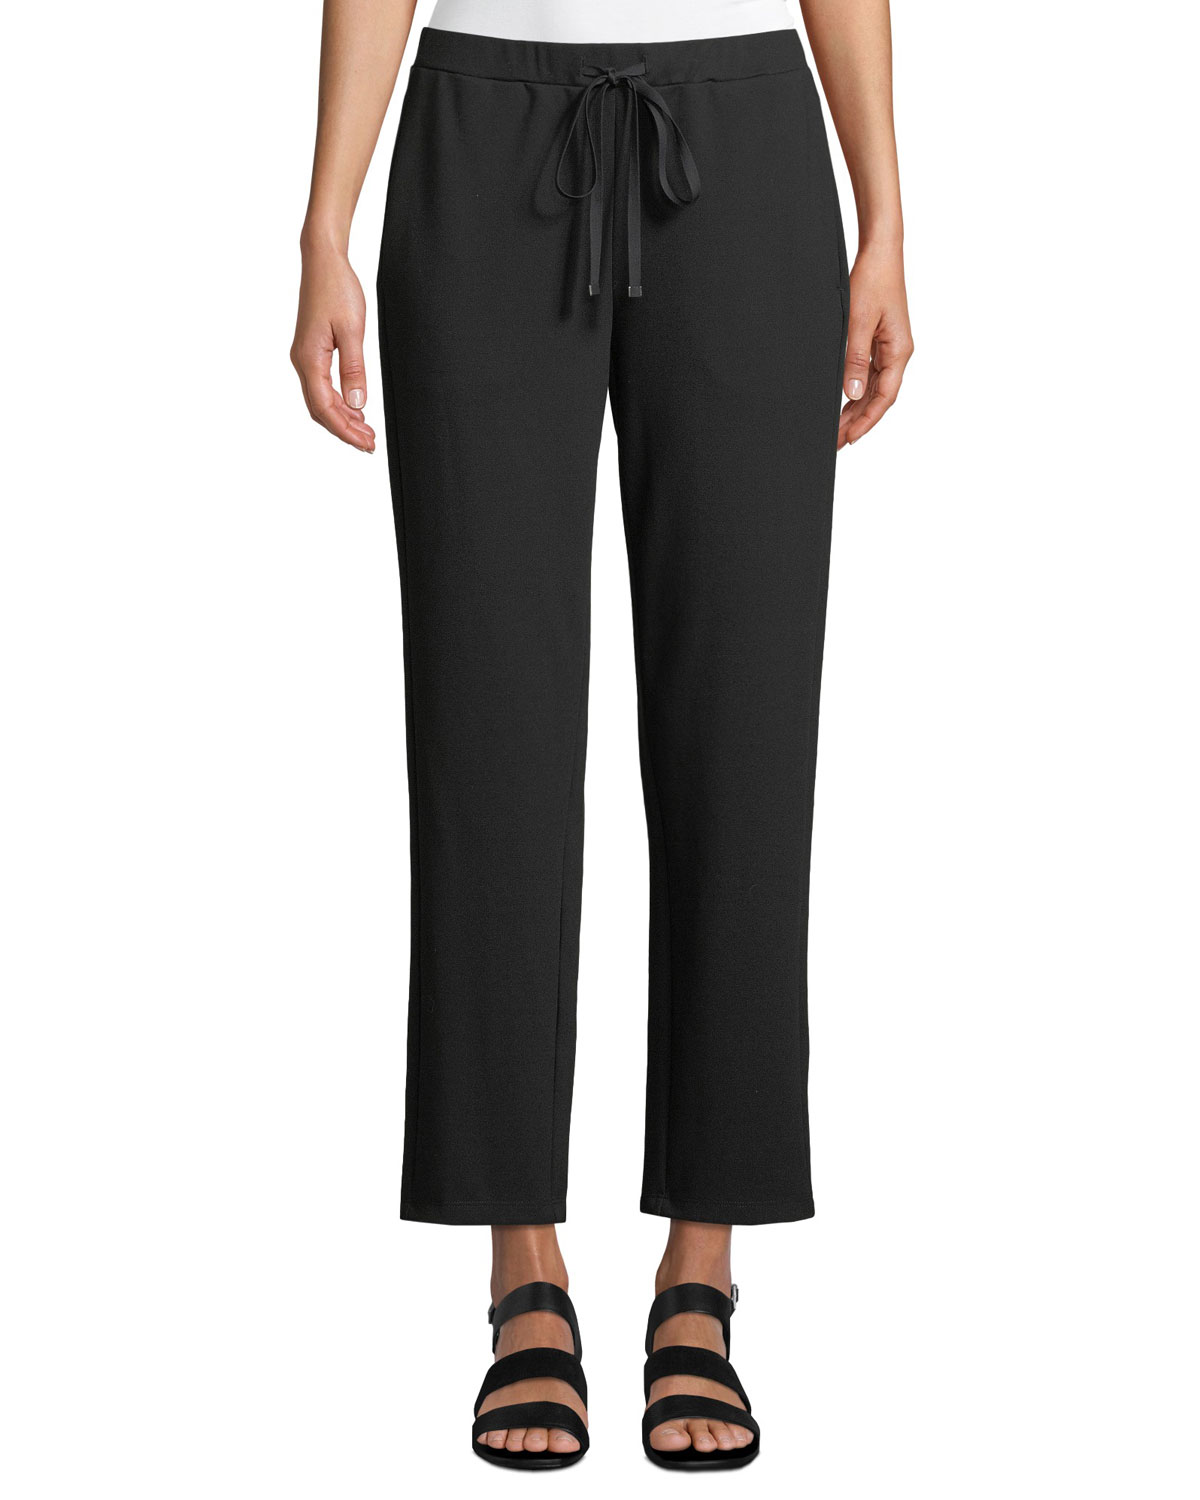 Eileen fisher petite travel ponte ankle pants neiman marcus for Travel pants petite